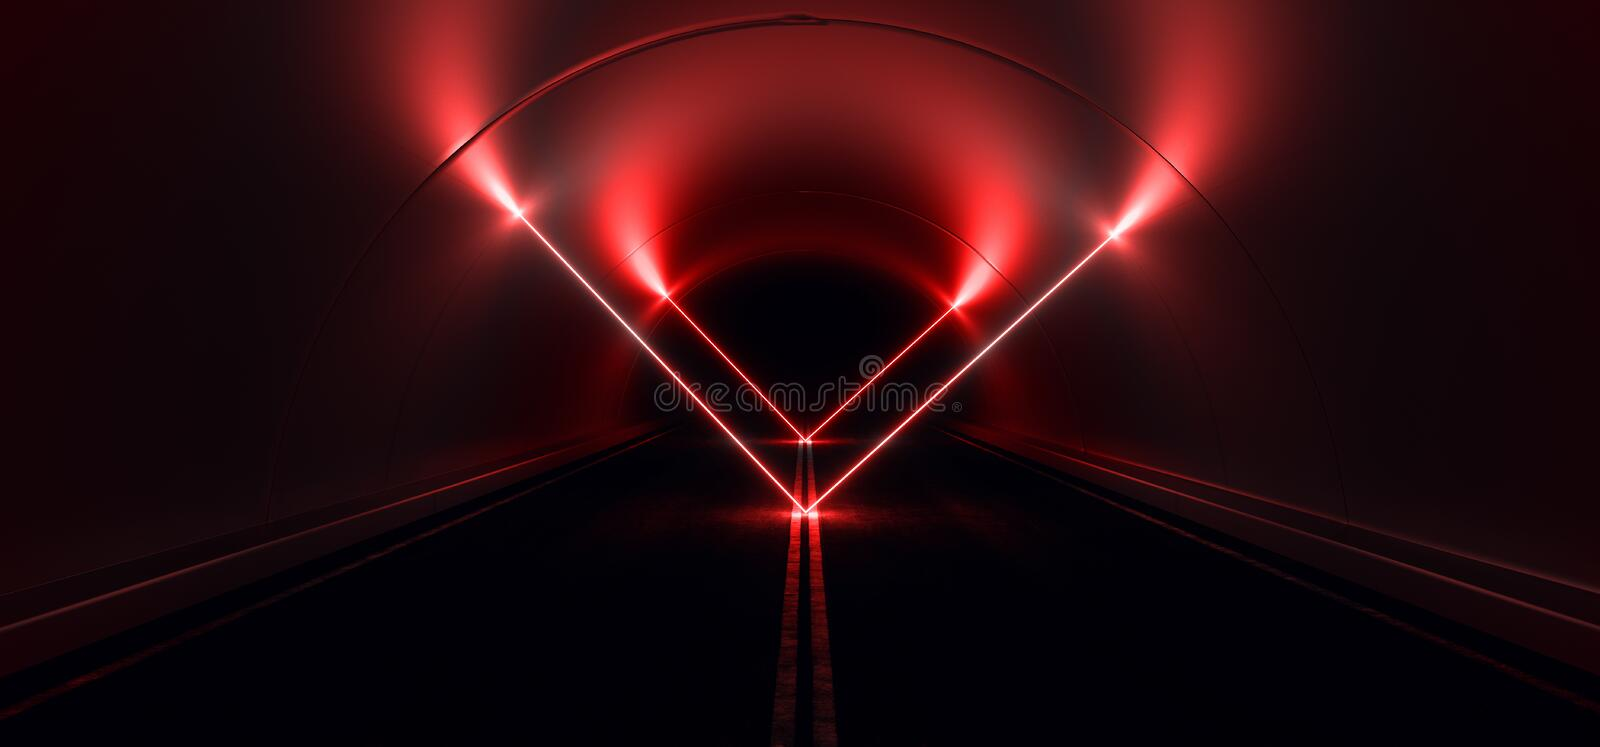 Sci Fi Futuristic Asphalt Cement Road Double Lined Concrete Walls Underground Dark Night Car Show Neon Laser Triangles Glowing Red. Arc Virtual Stage Showroom vector illustration